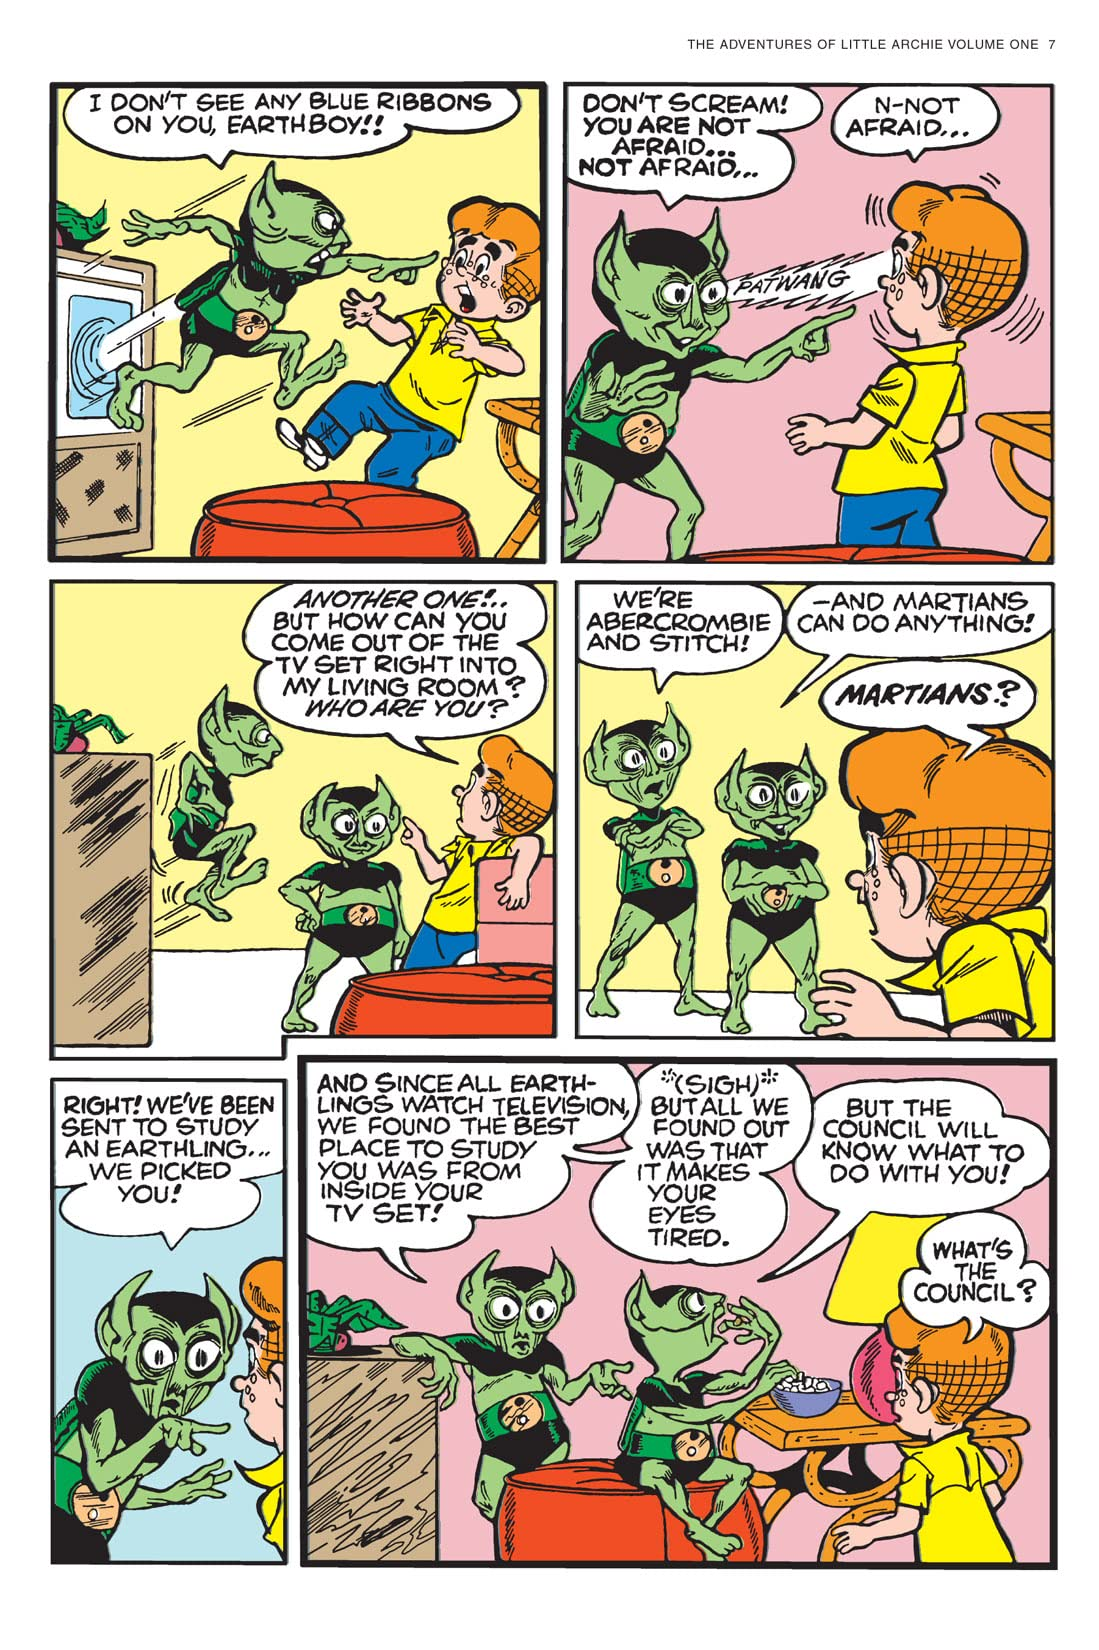 The Adventures of Little Archie Vol. 1